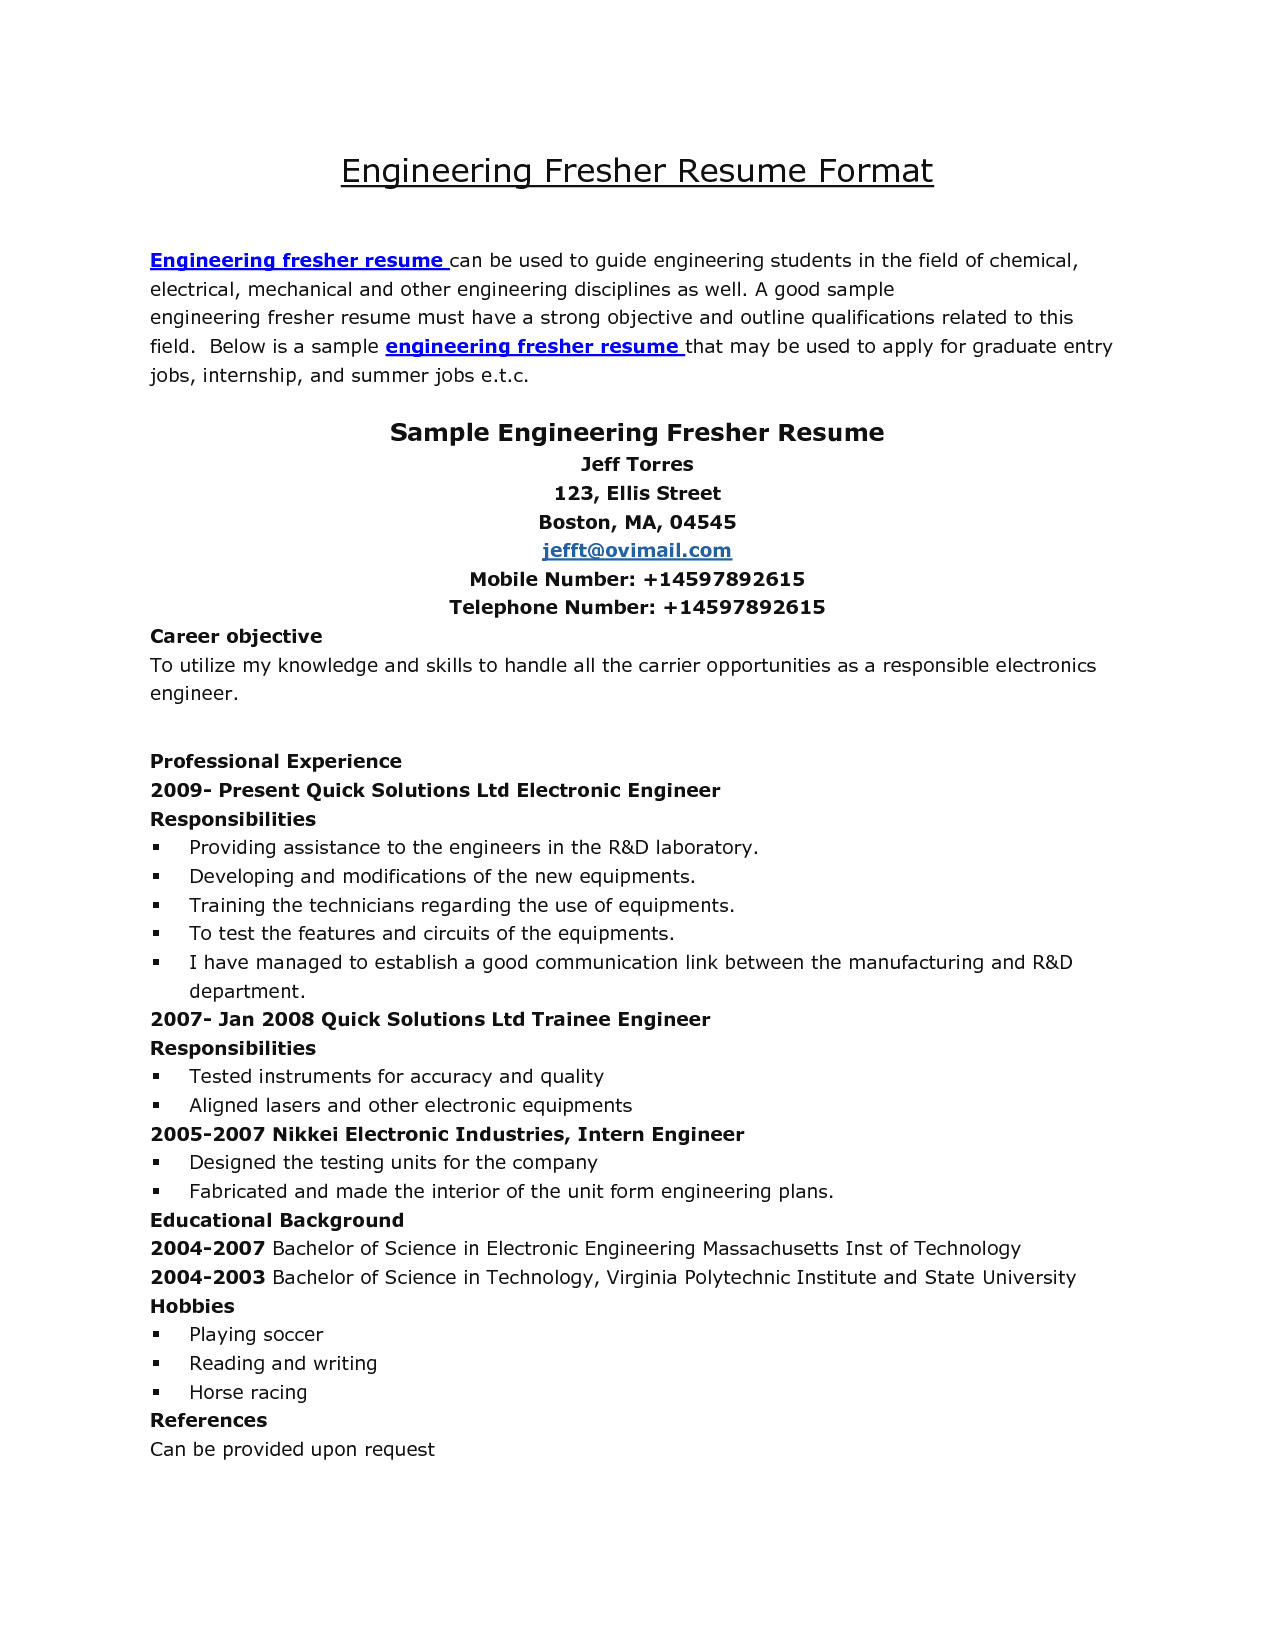 Mechanical Engineering Cover Letter Template - Sample Resume Mechanical Engineer Fresh Graduate Fresh Sample Cover